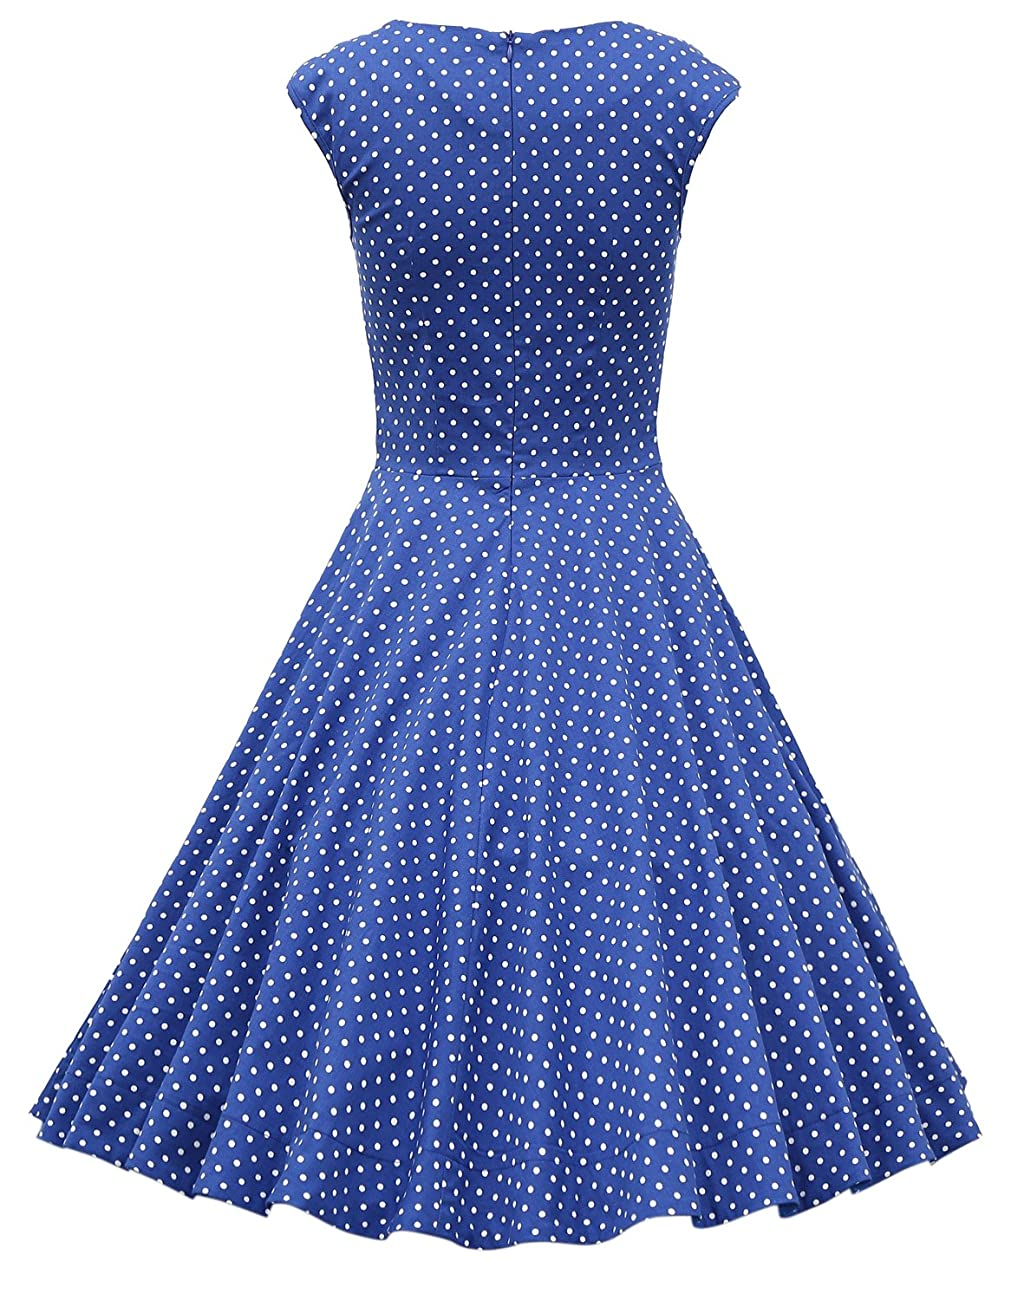 MUXXN Women's 1950s Retro Vintage Cap Sleeve Party Swing Dress 1